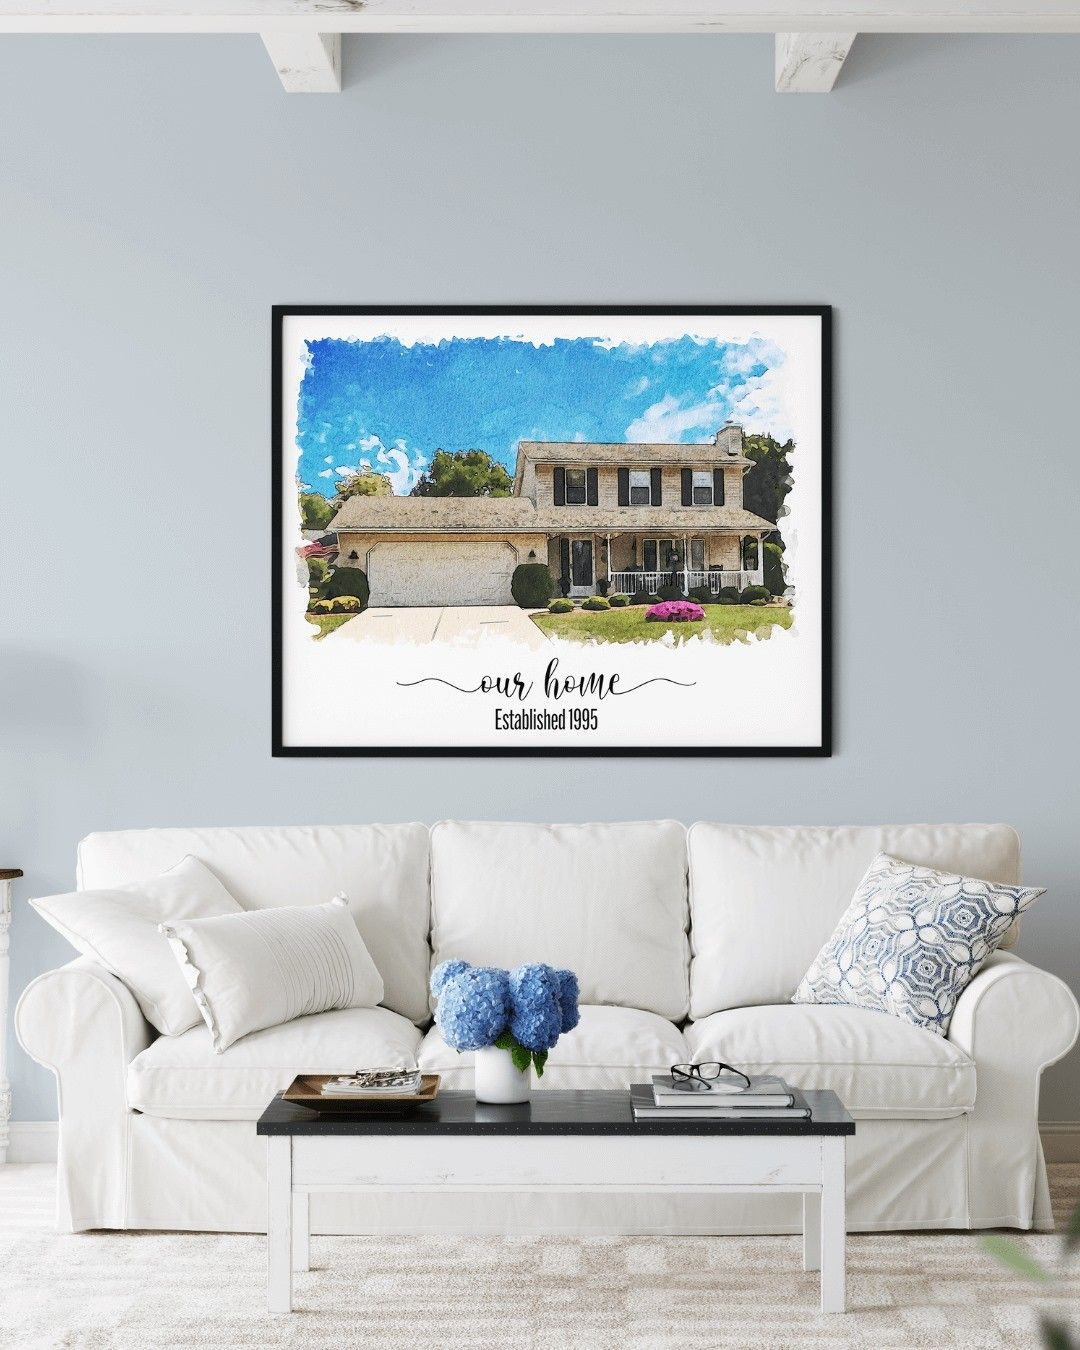 ✨One of the most life-changing events in life is purchasing a new home! Help yourself or your loved ones commemorate this event with a custom house portrait that will be sure to show off the pride in homeownership. Proudly Made in 🇺🇸 . . . #artforhomedecor #watercoloroftheday #friendgift #newhomegift #homemadedecor #watercolor_artist #homedécor #interiortips #water_color #homedecoridea #customportraits #originalpaintings #waterpaint #houseportraits #customwatercolor #watercolourartwork #person